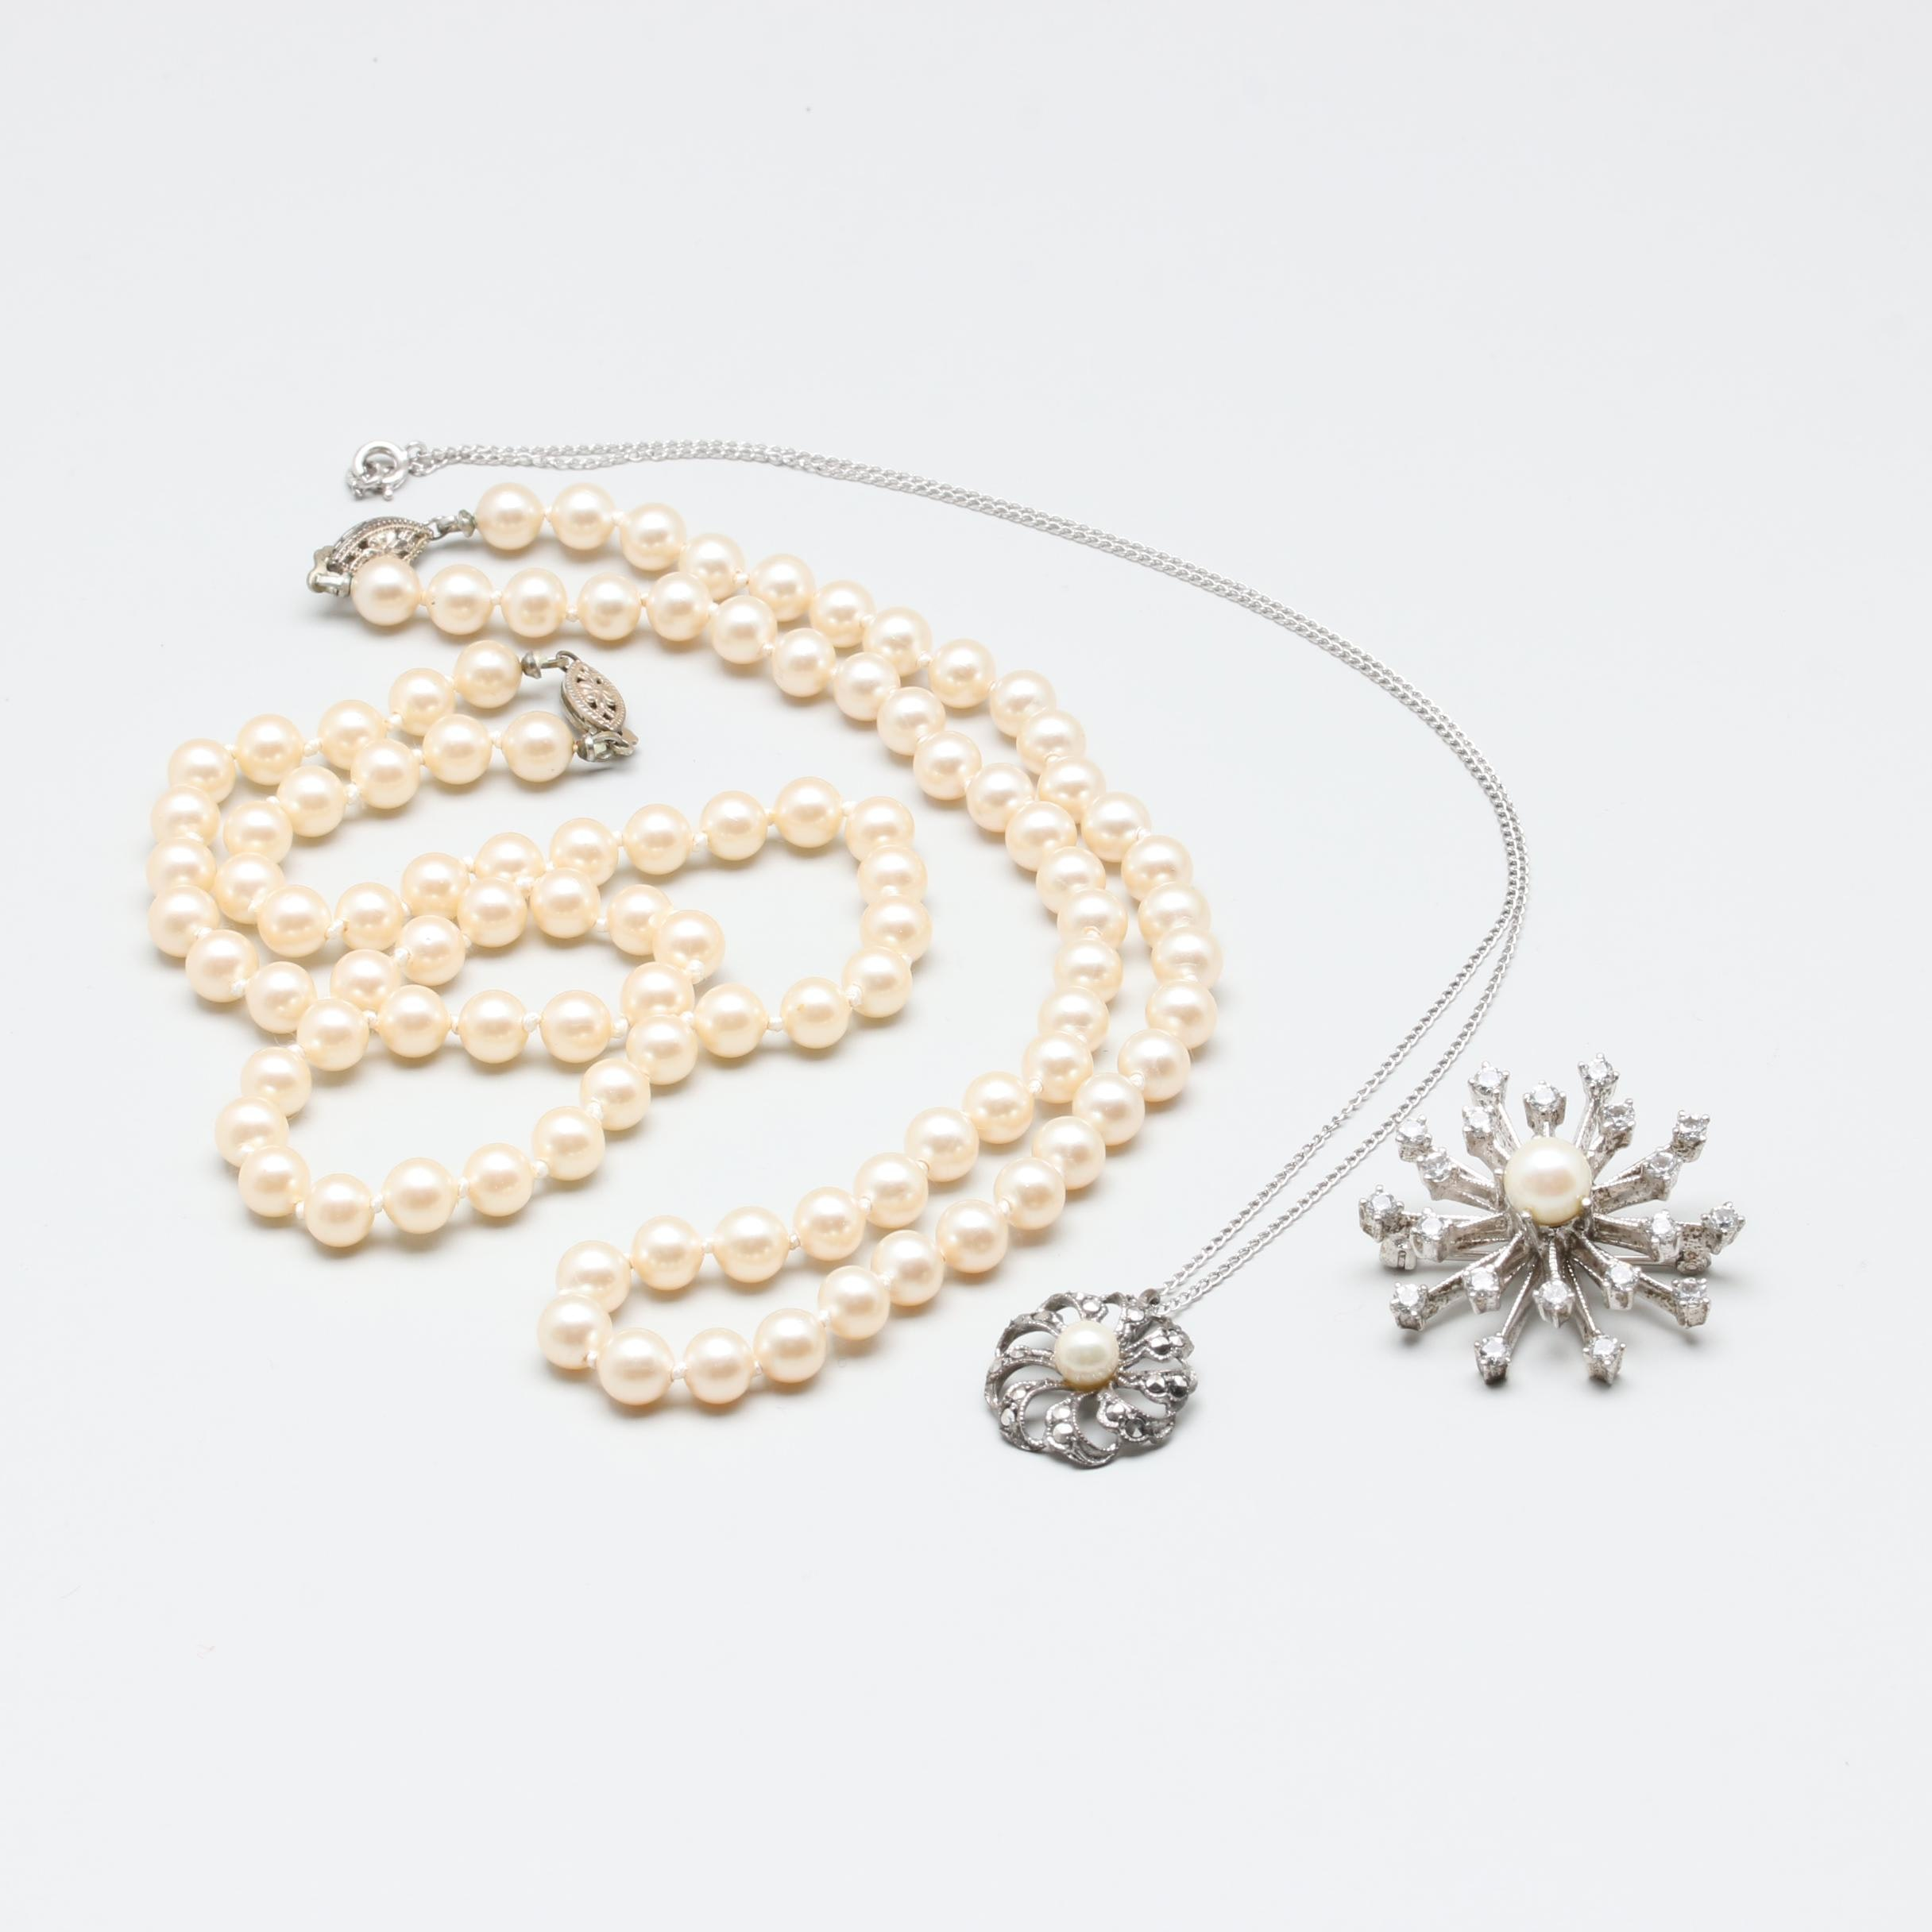 Sterling Silver Cultured Pearl, Imitation Pearl, and Synthetic Spinel Jewelry